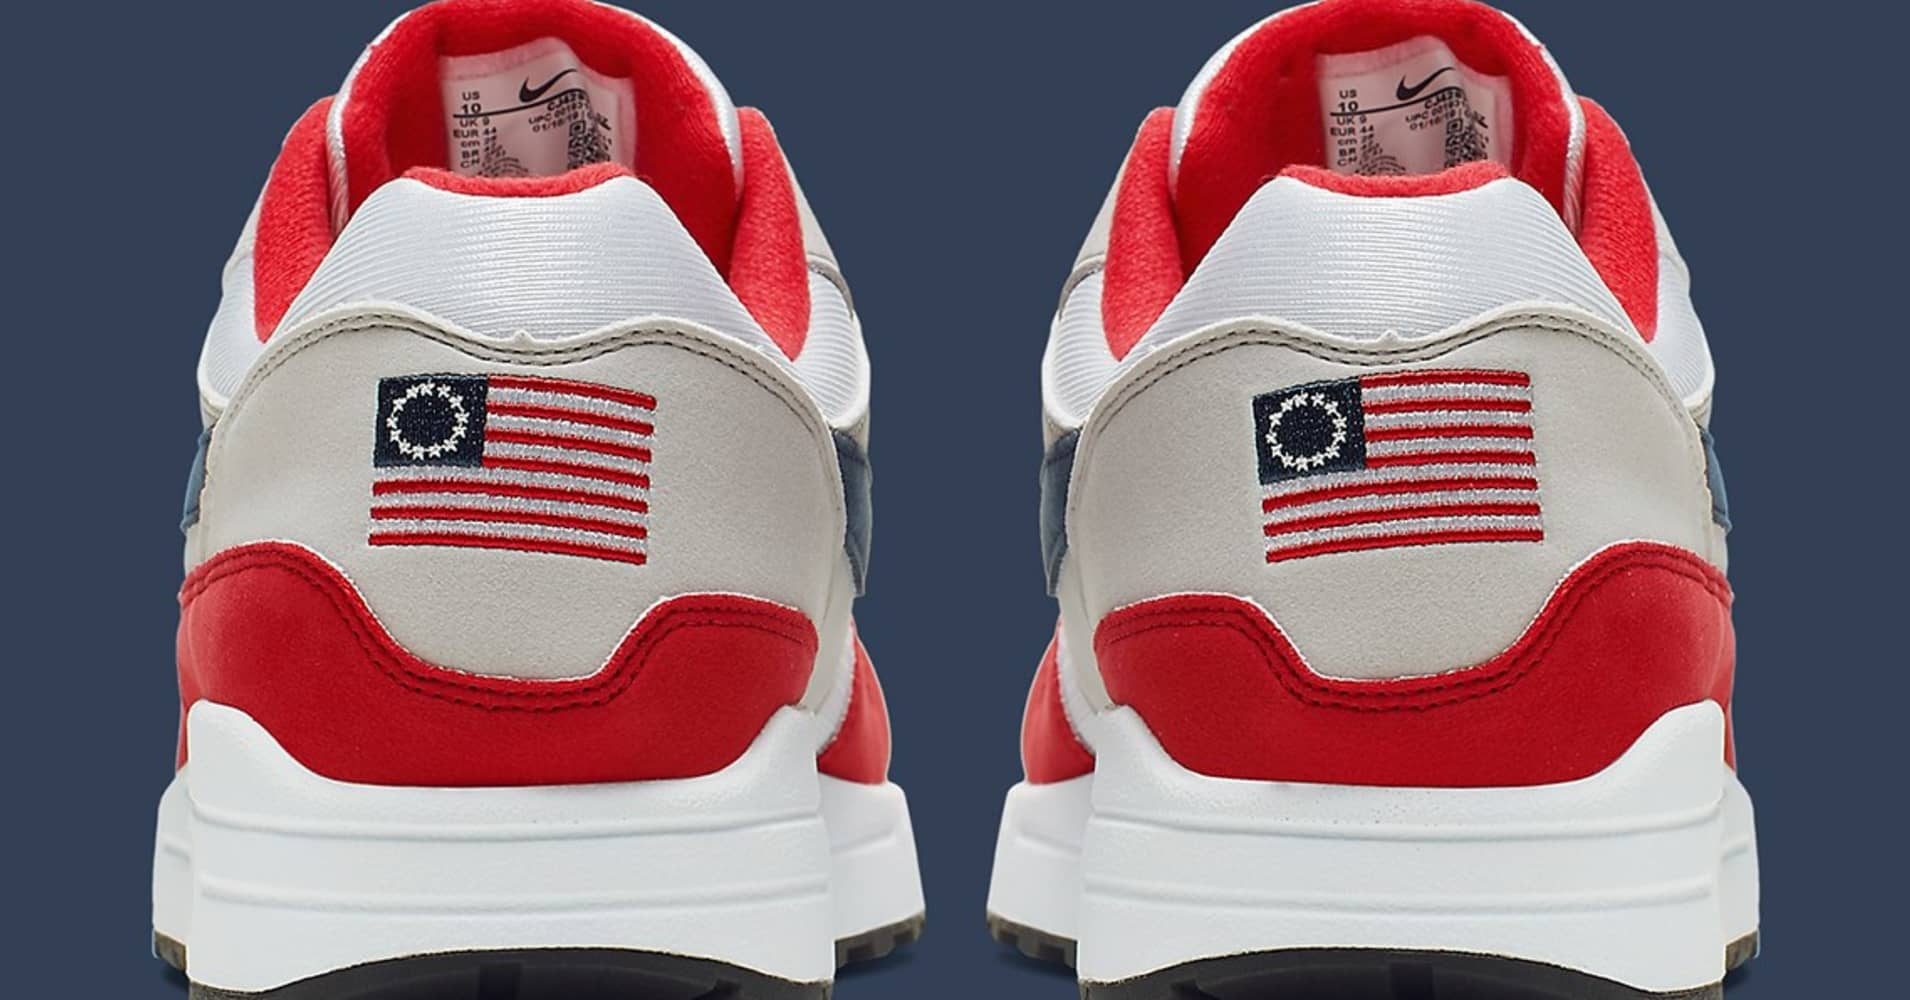 612de875 Arizona governor to withdraw Nike financial incentives after shoe company  pulls 'Betsy Ross' American flag sneakers